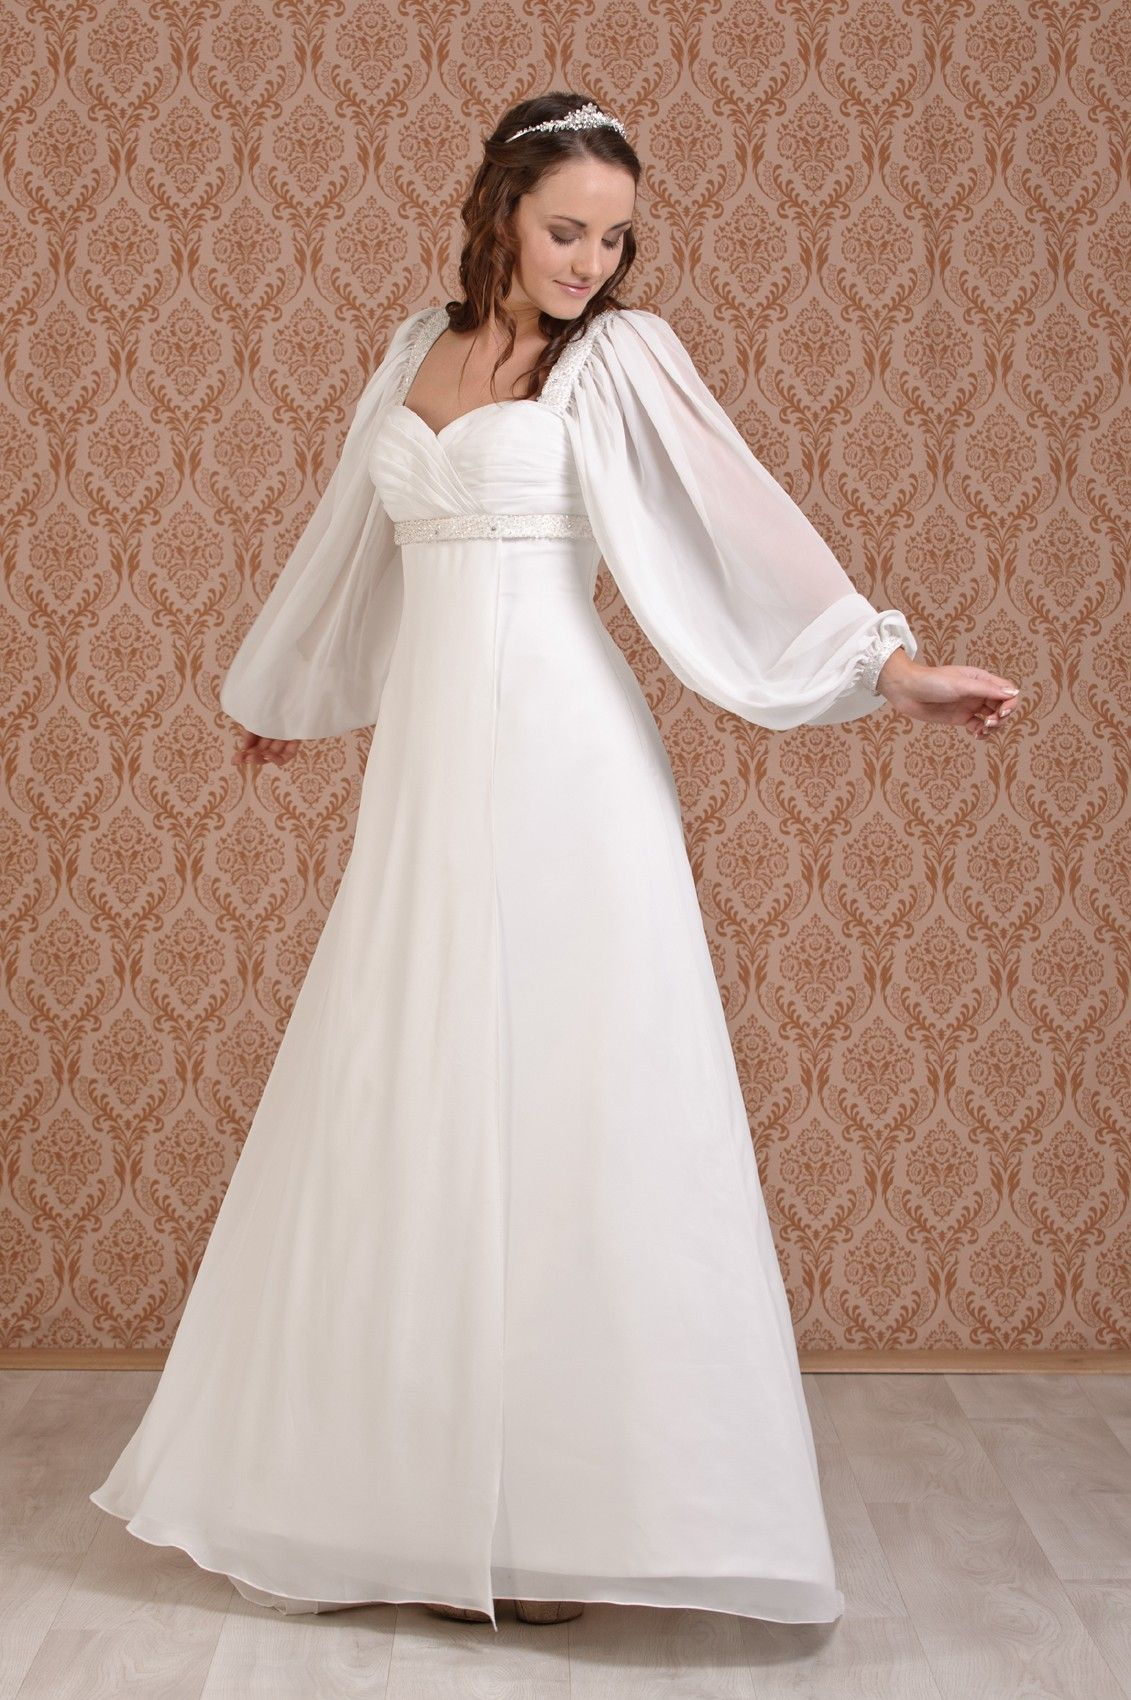 sleeved wedding dresses Long Sleeve Wedding Dresses To Commemorate Your Special Day